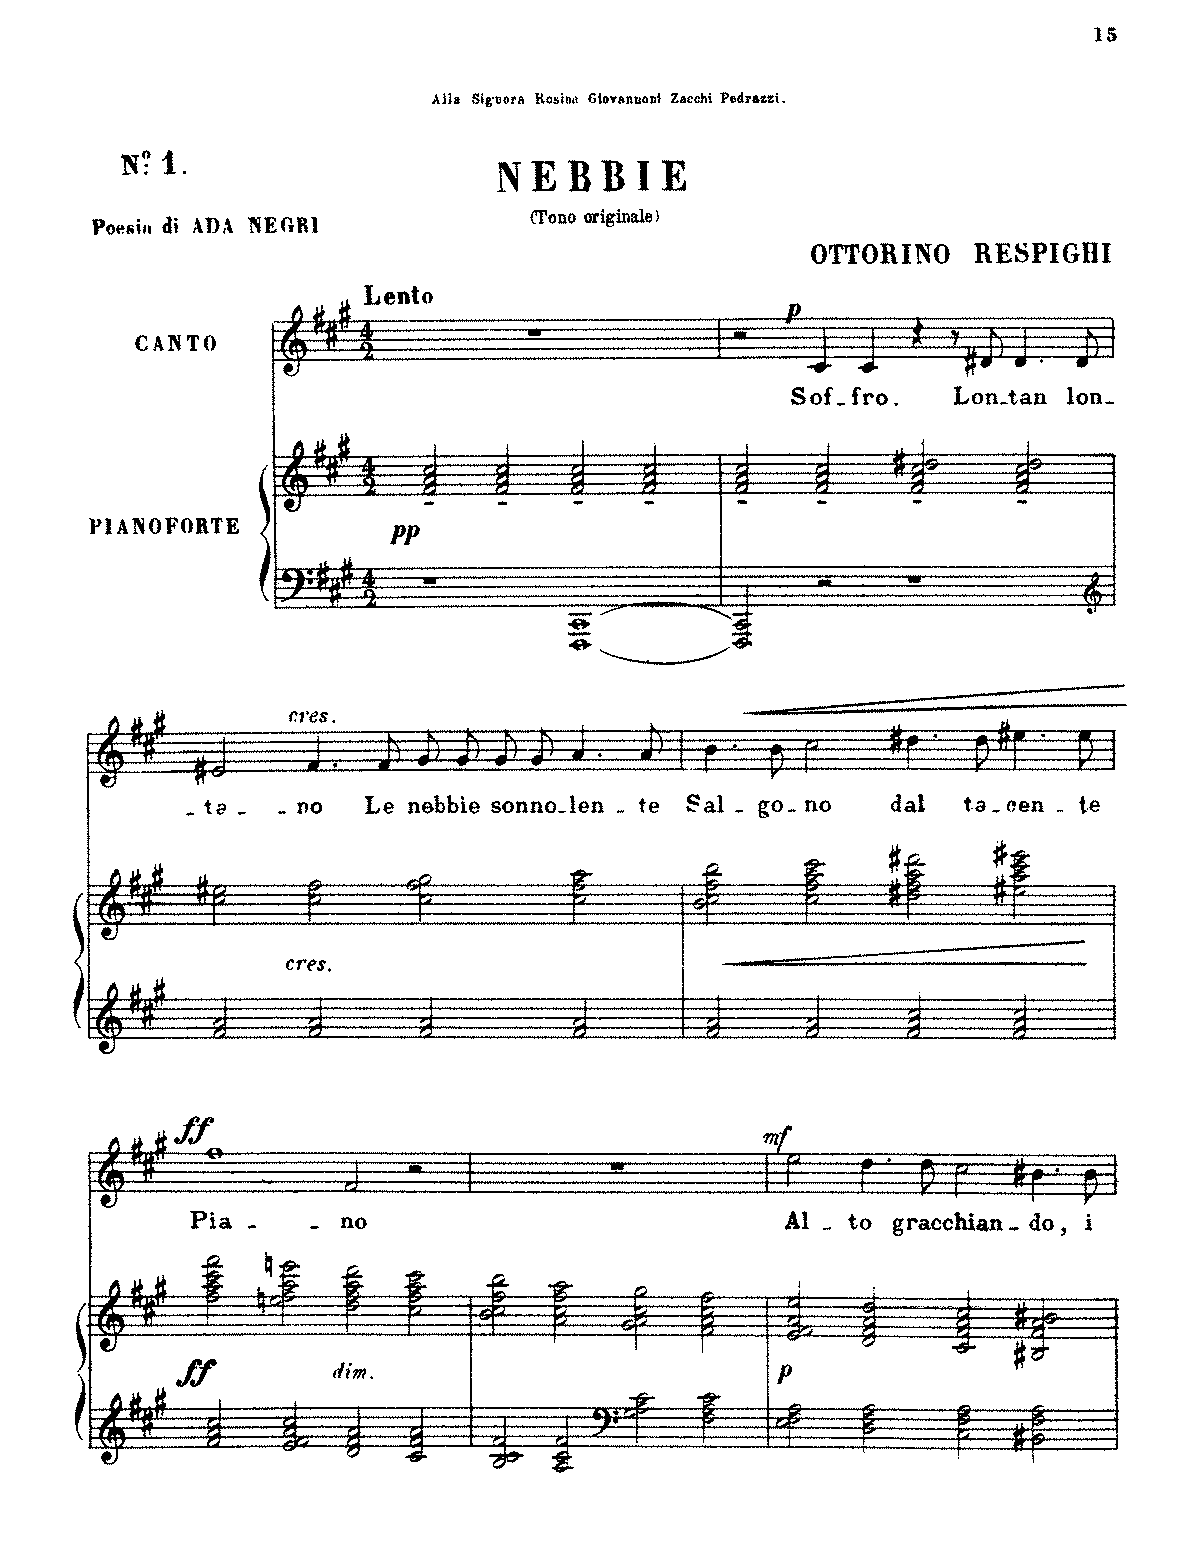 PMLP136941-Respighi - Nebbie (voice and piano).pdf